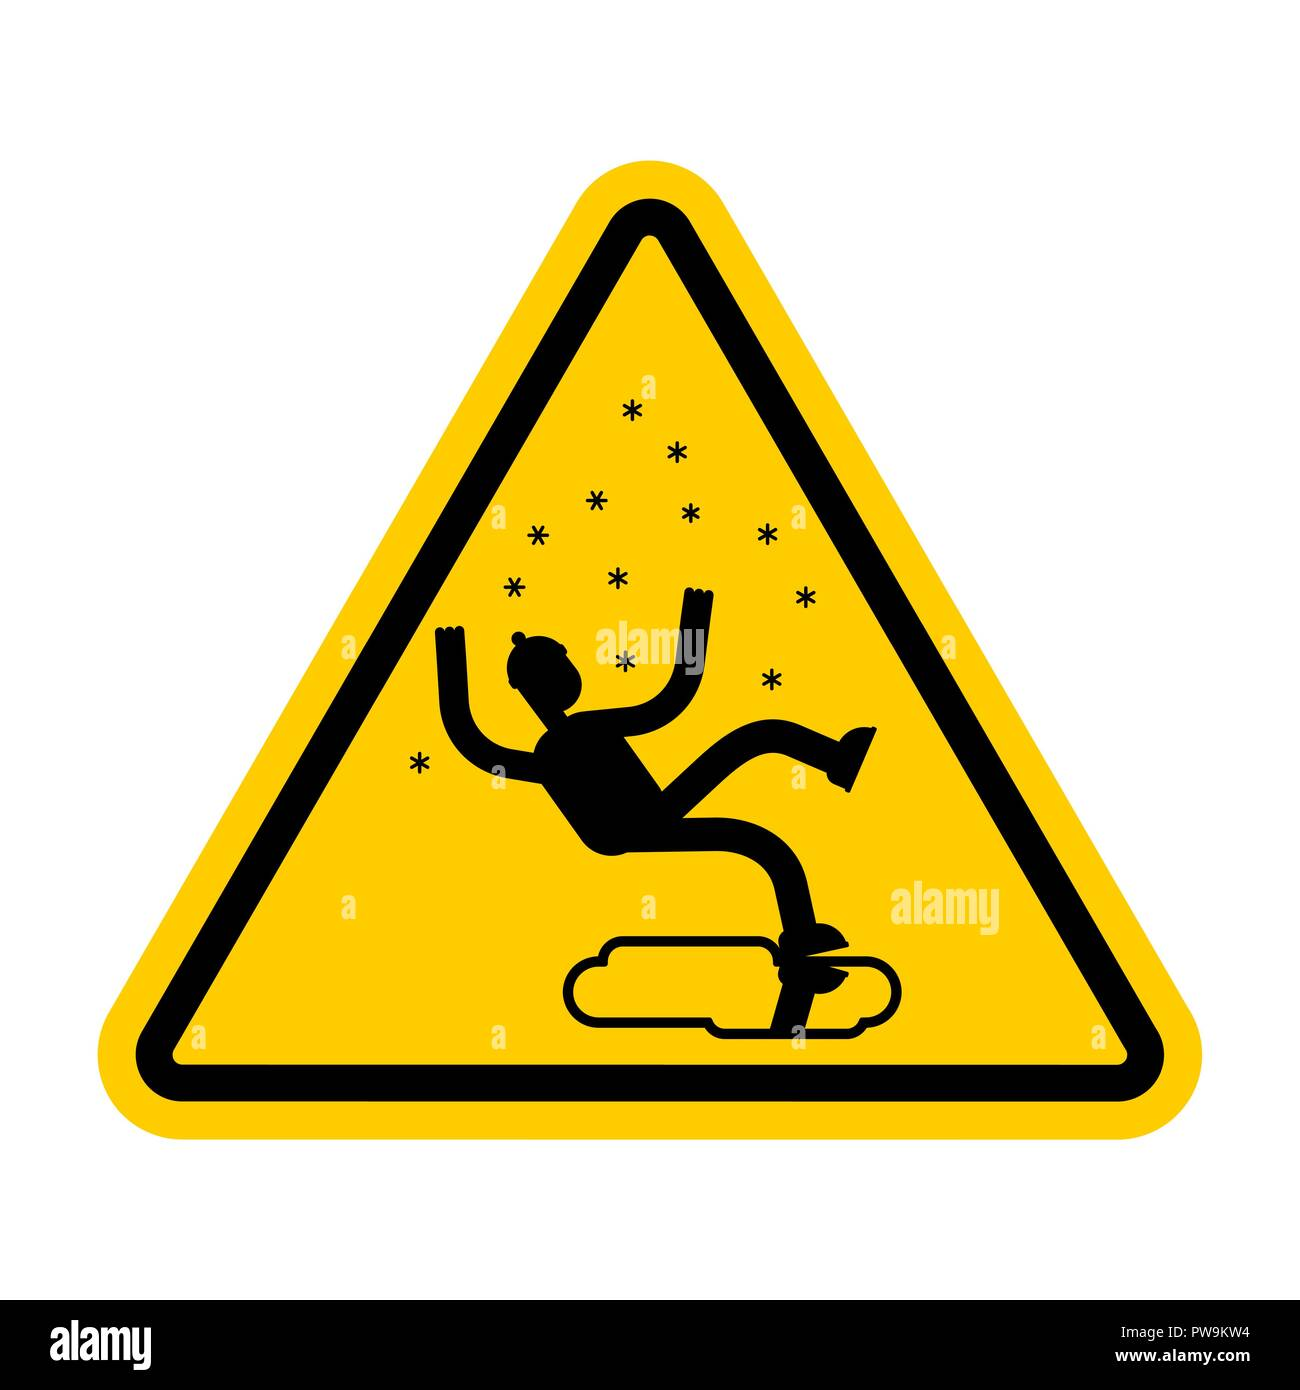 Attention Slippery ice road in winter. Caution Slip on ice. Yellow road danger sign - Stock Image